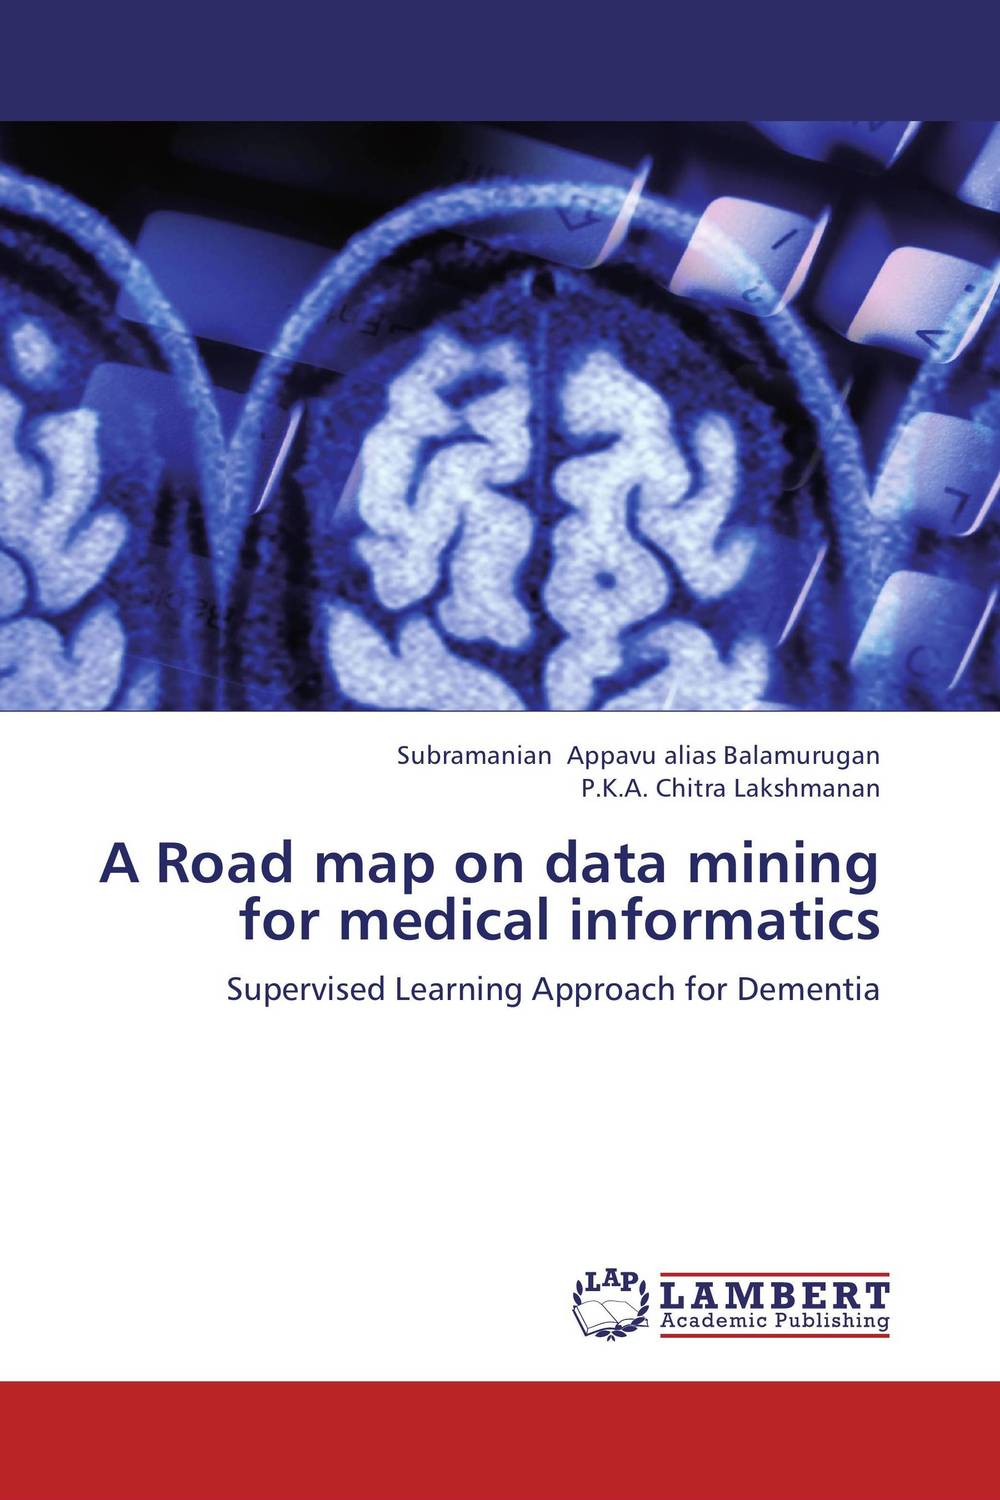 A Road map on data mining for medical informatics new original 516 363 s4 c warranty for two year